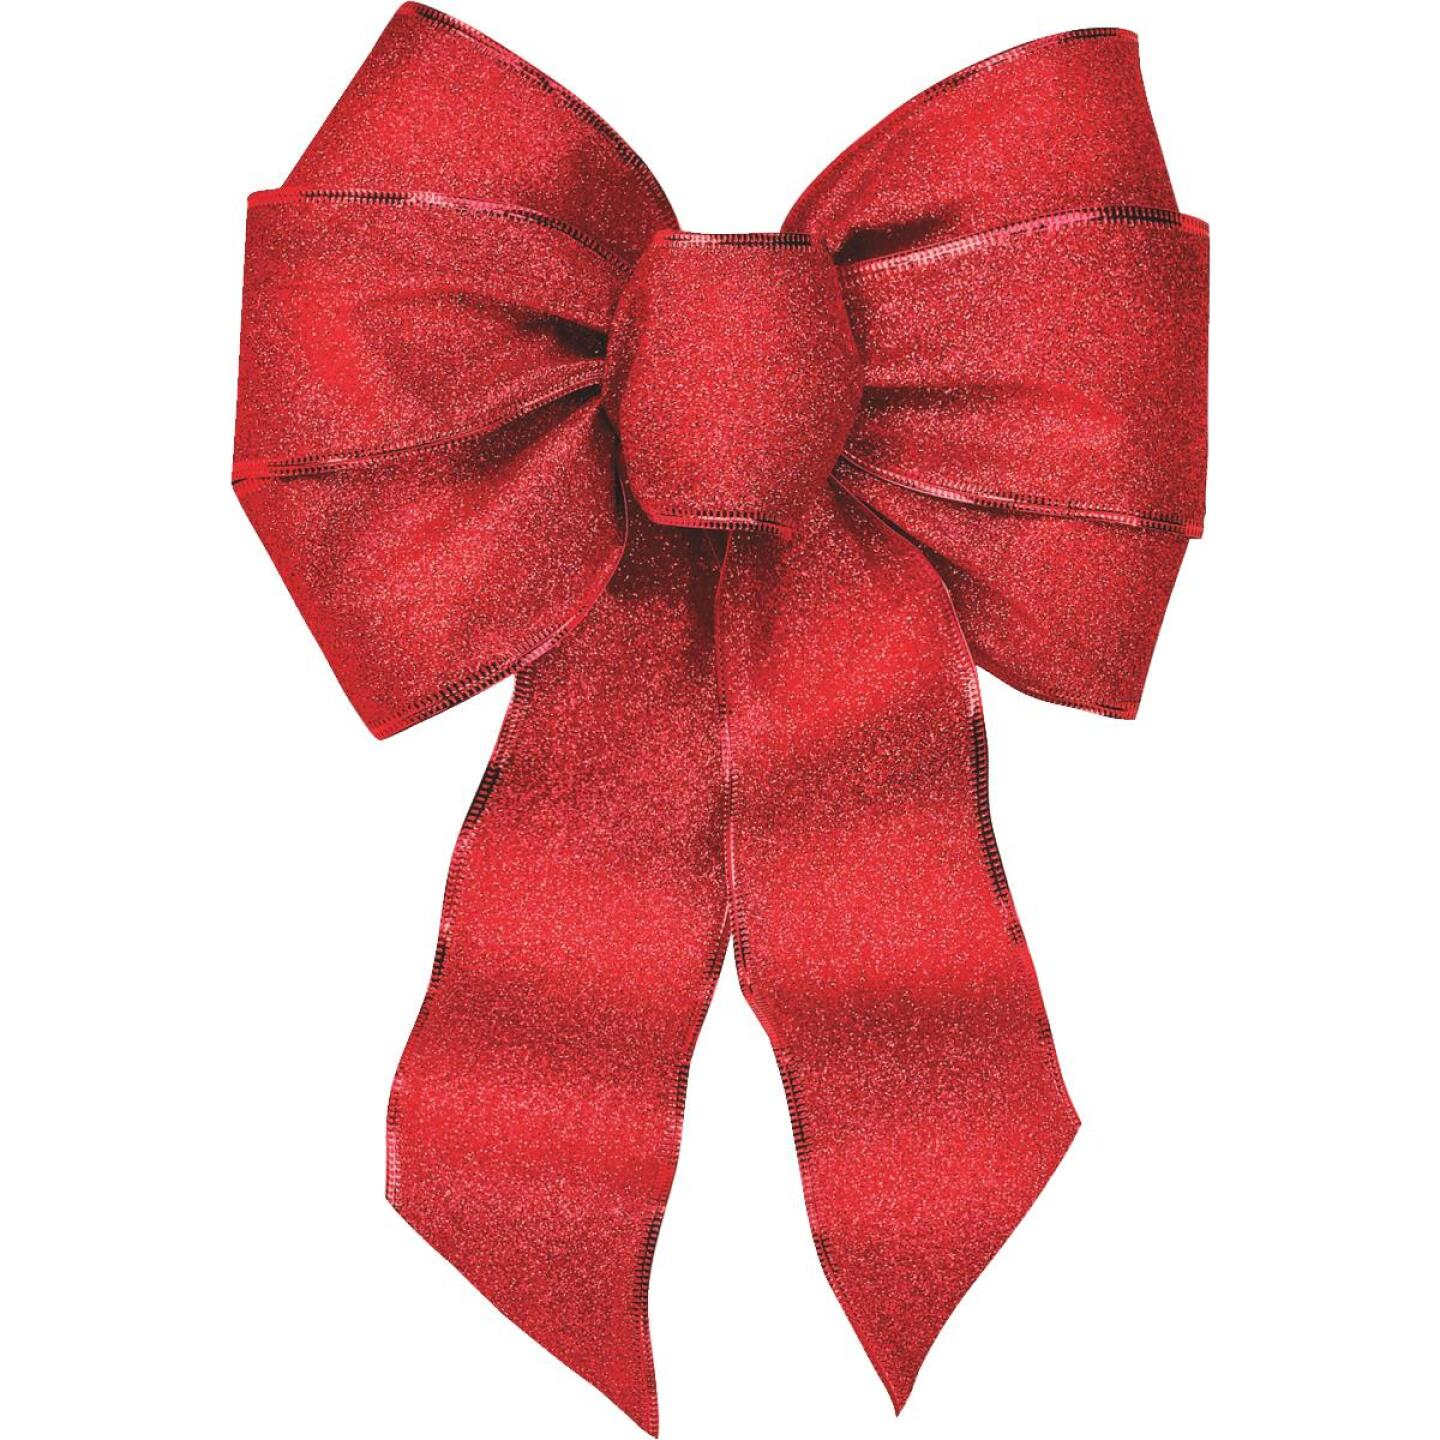 Holiday Trims 7-Loop 8-1/2 In. W. x 14 In. L. Assorted Glitter Christmas Bow Image 3